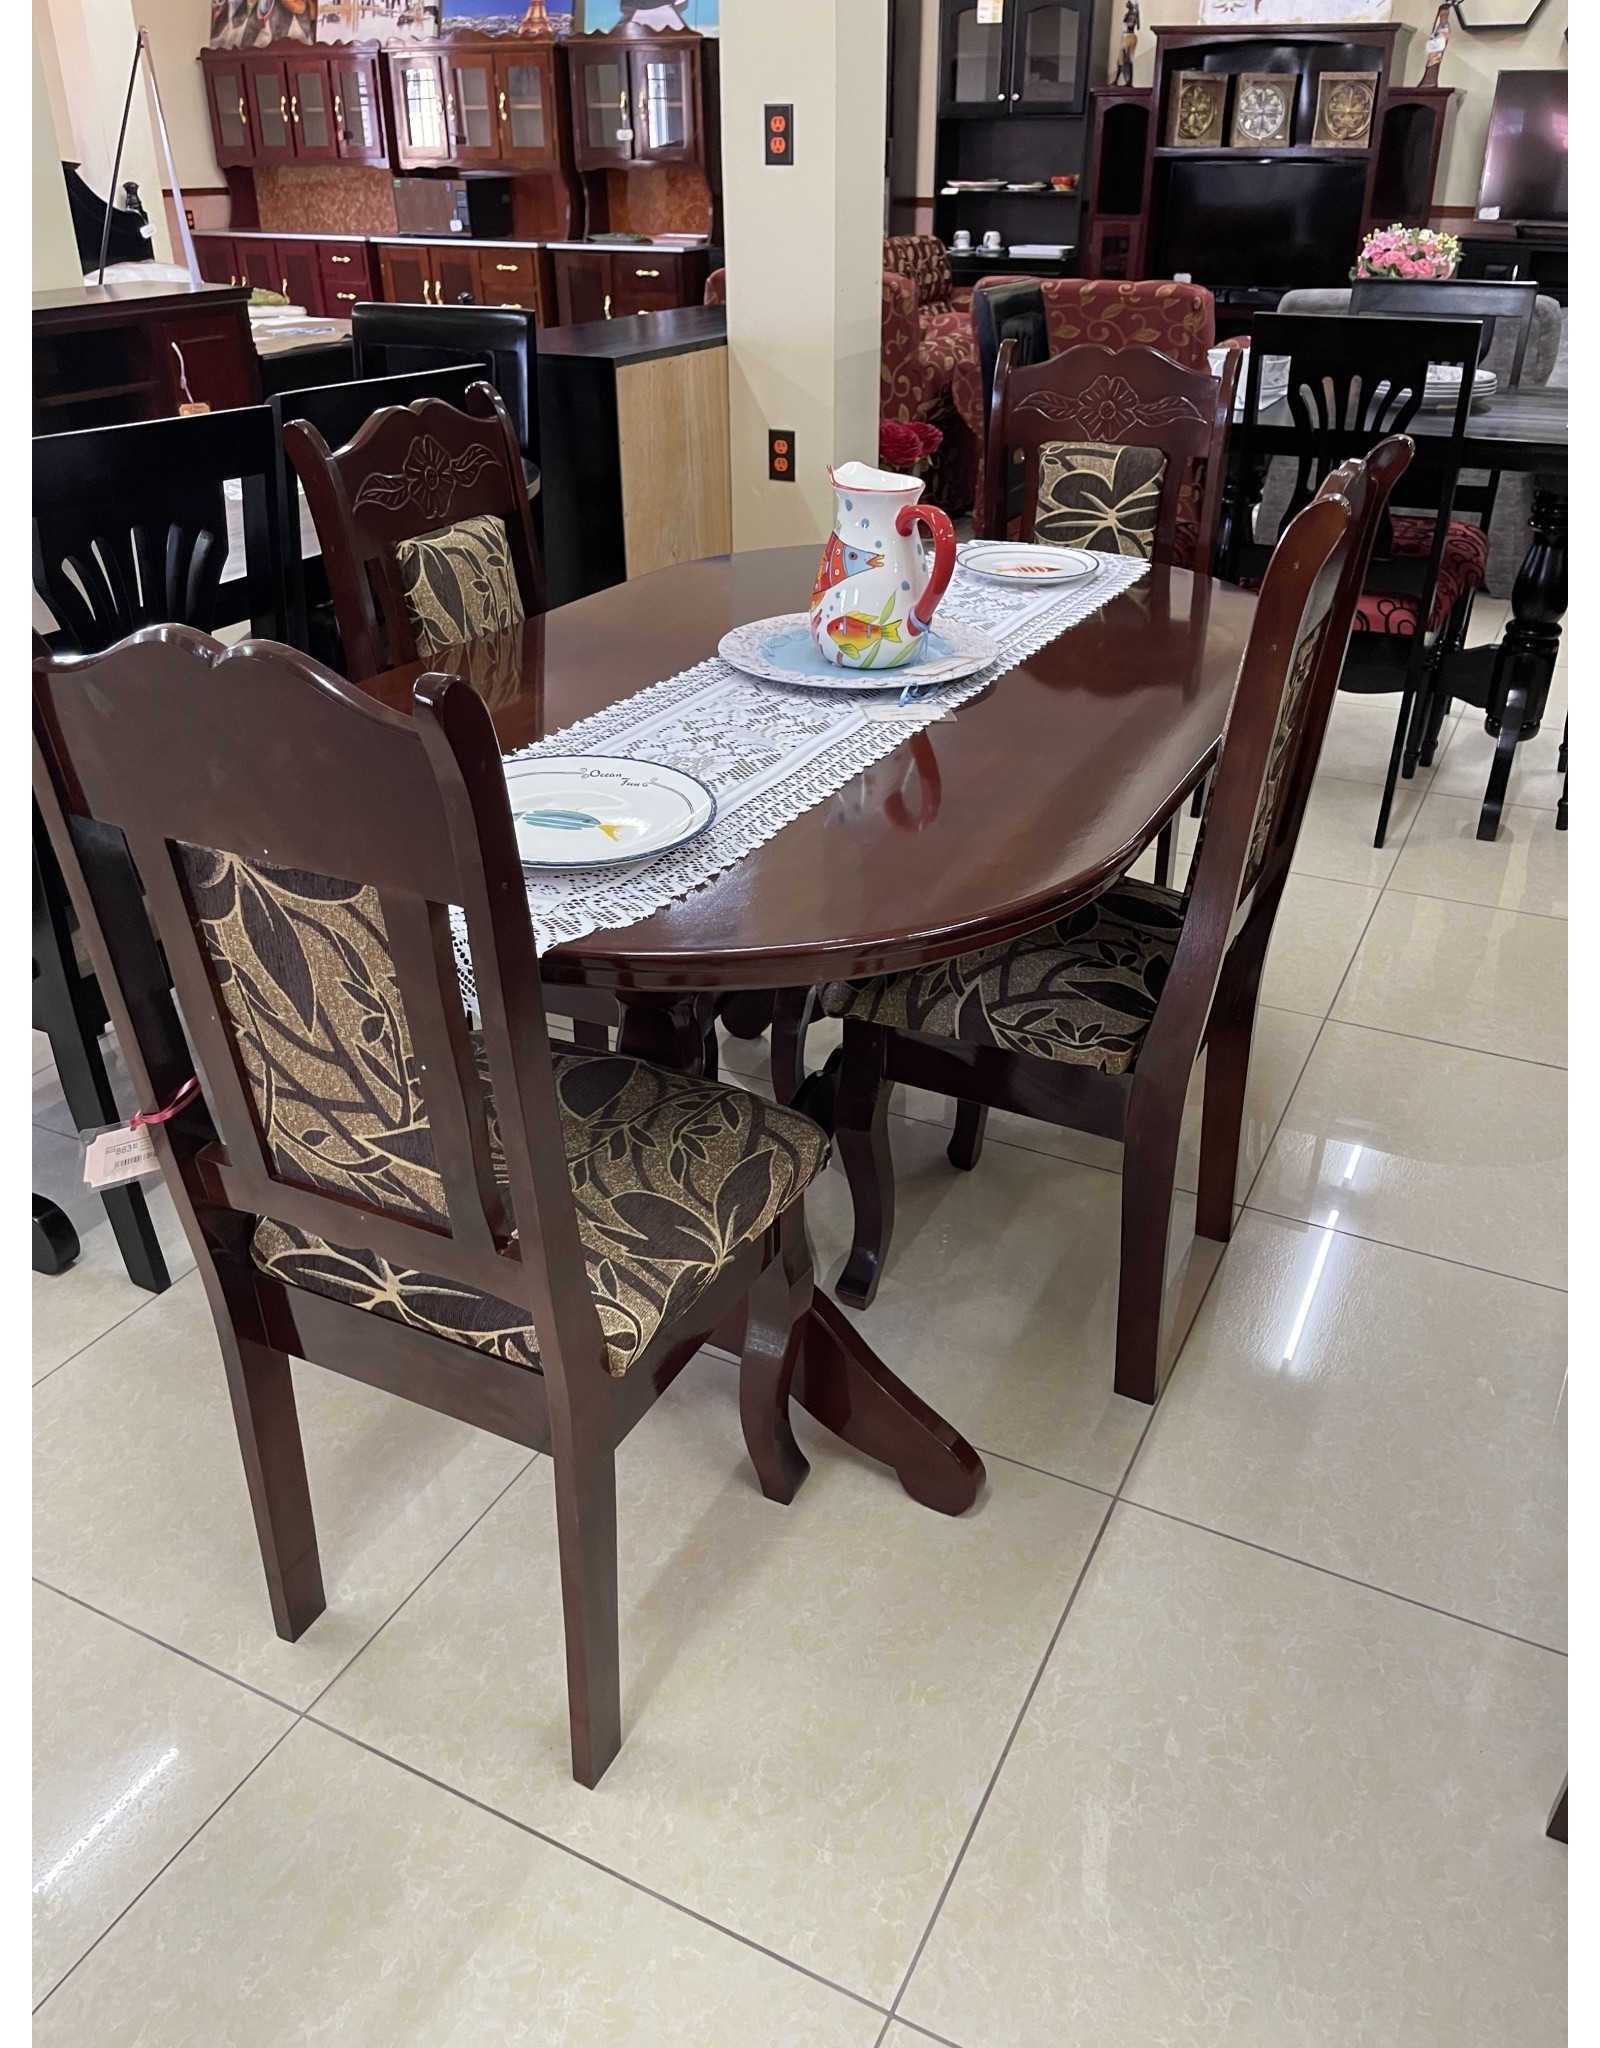 Kitchen Table w/4 Chairs and Carving (CZL)